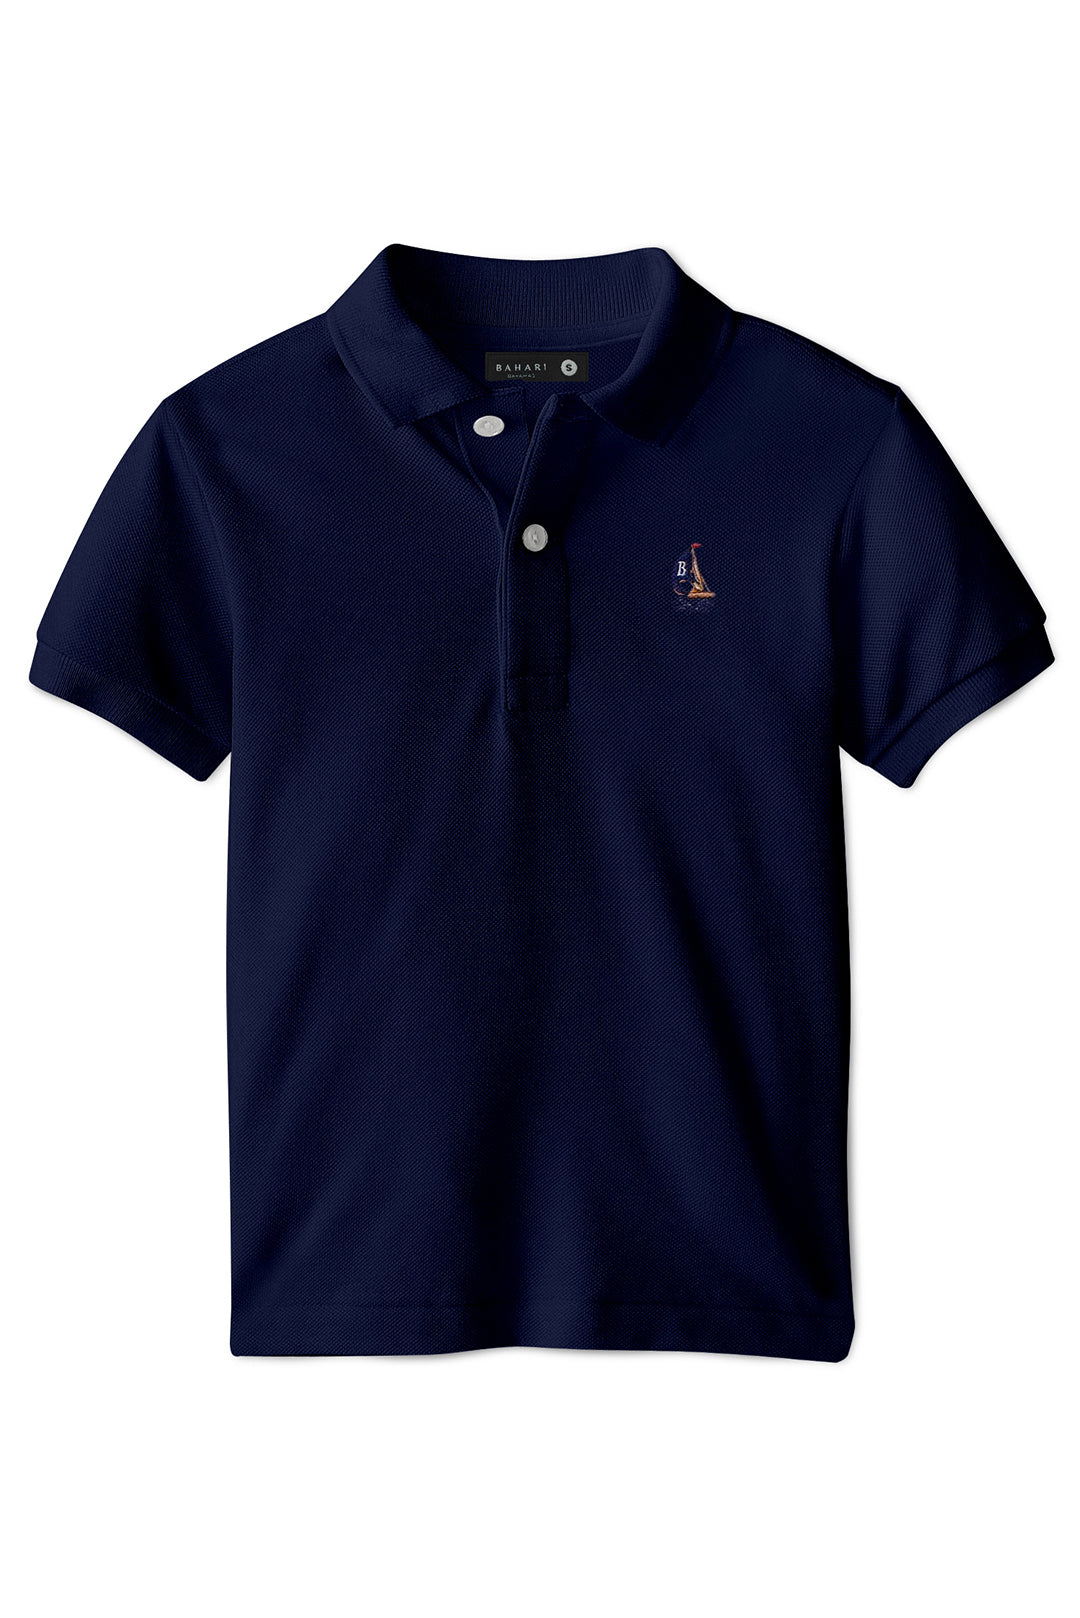 THE CLASSIC POLO- NAVY